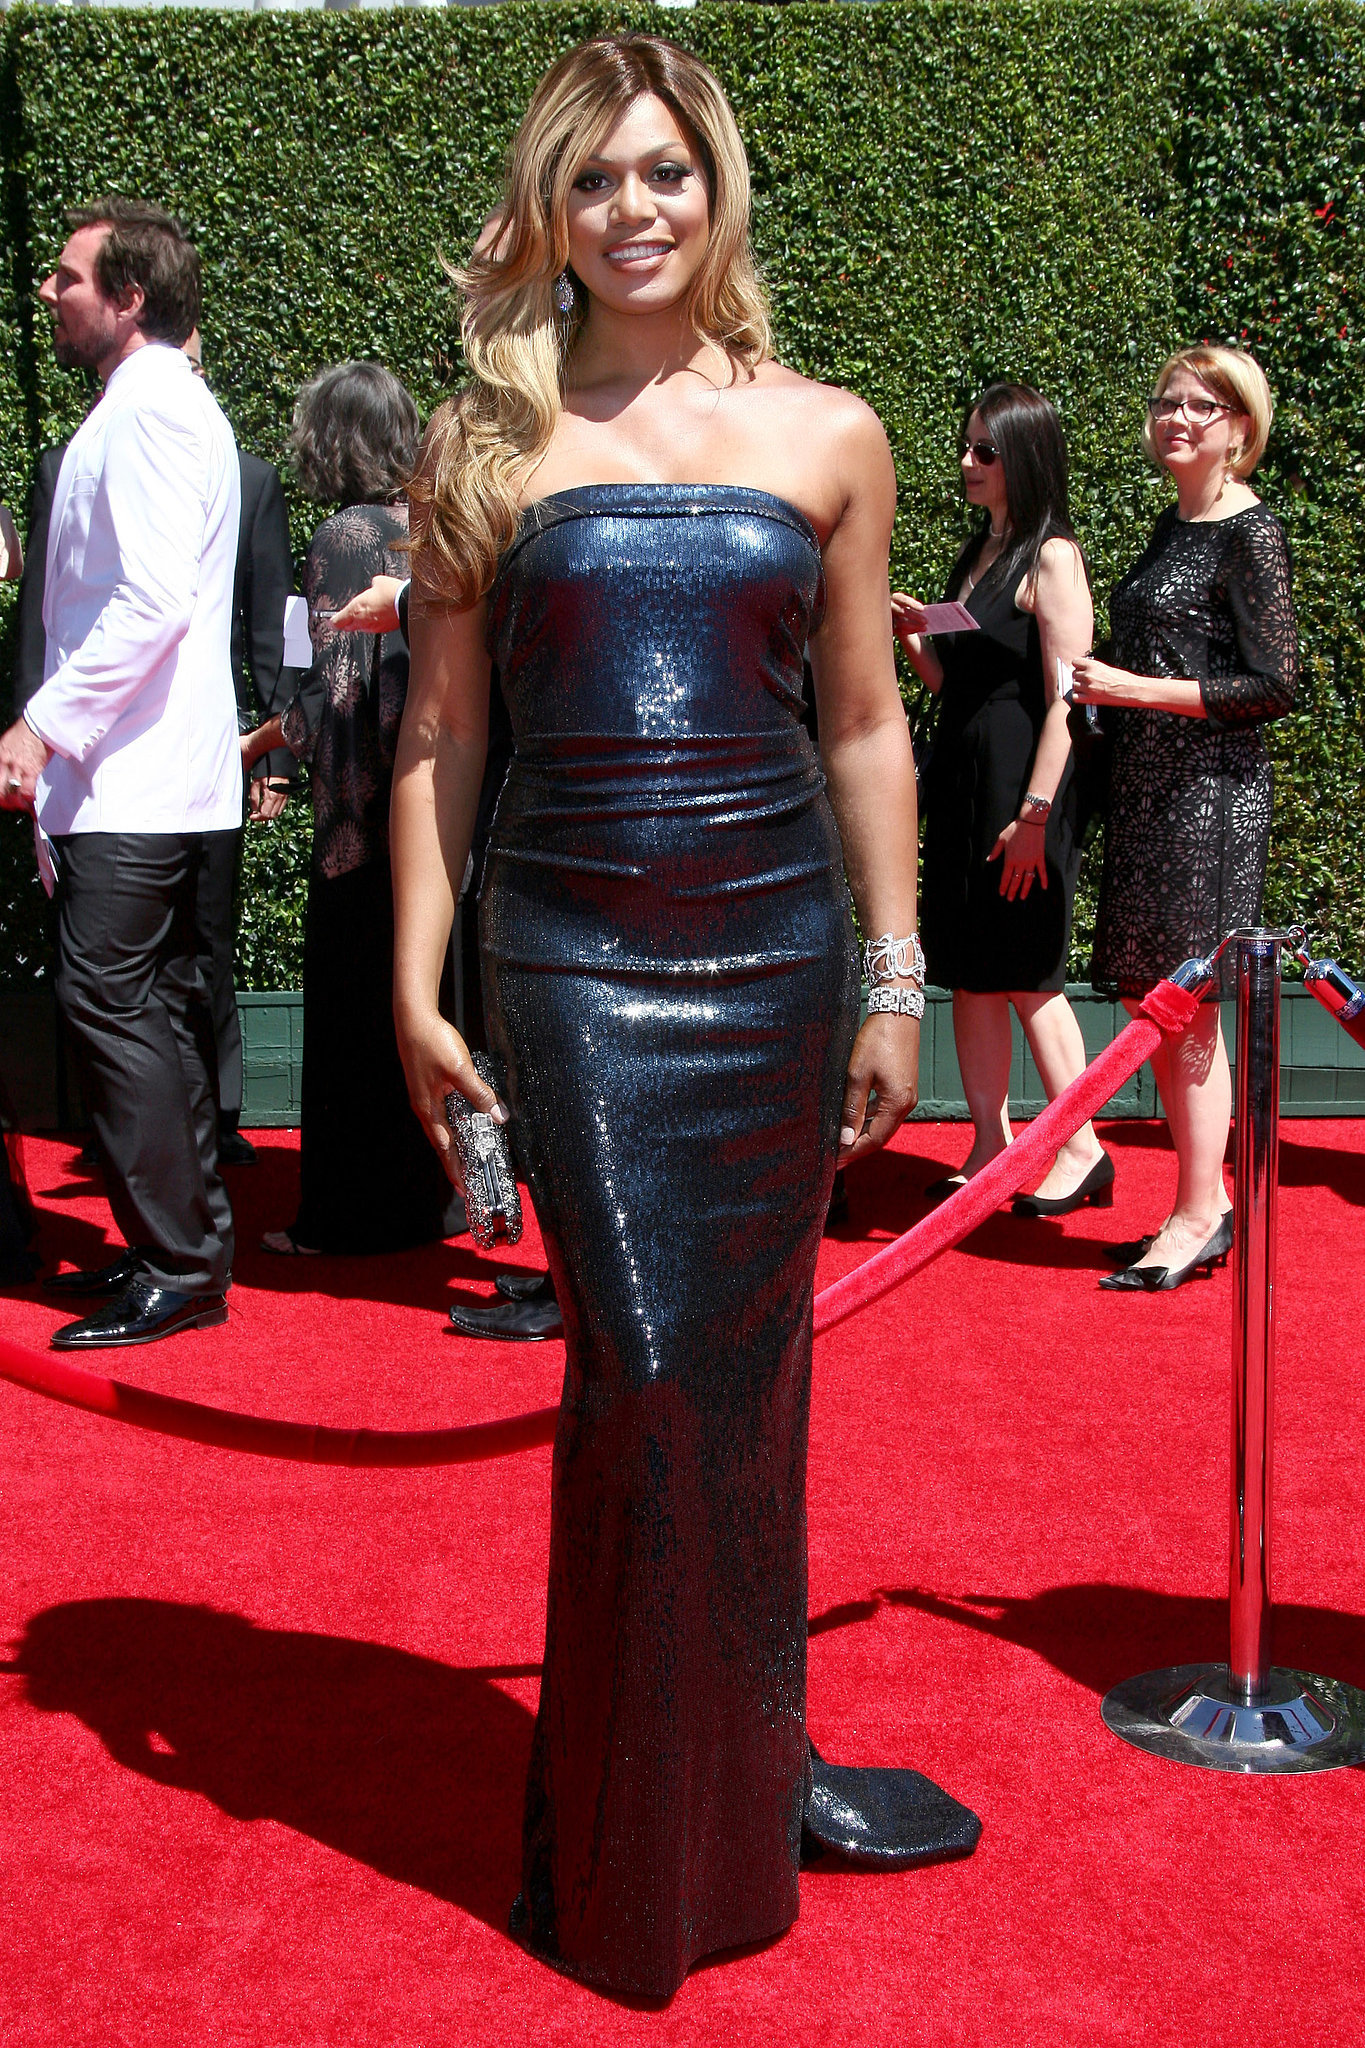 For the Creative Arts Emmys in August 2014, Laverne slipped into this shimmering strapless gown.